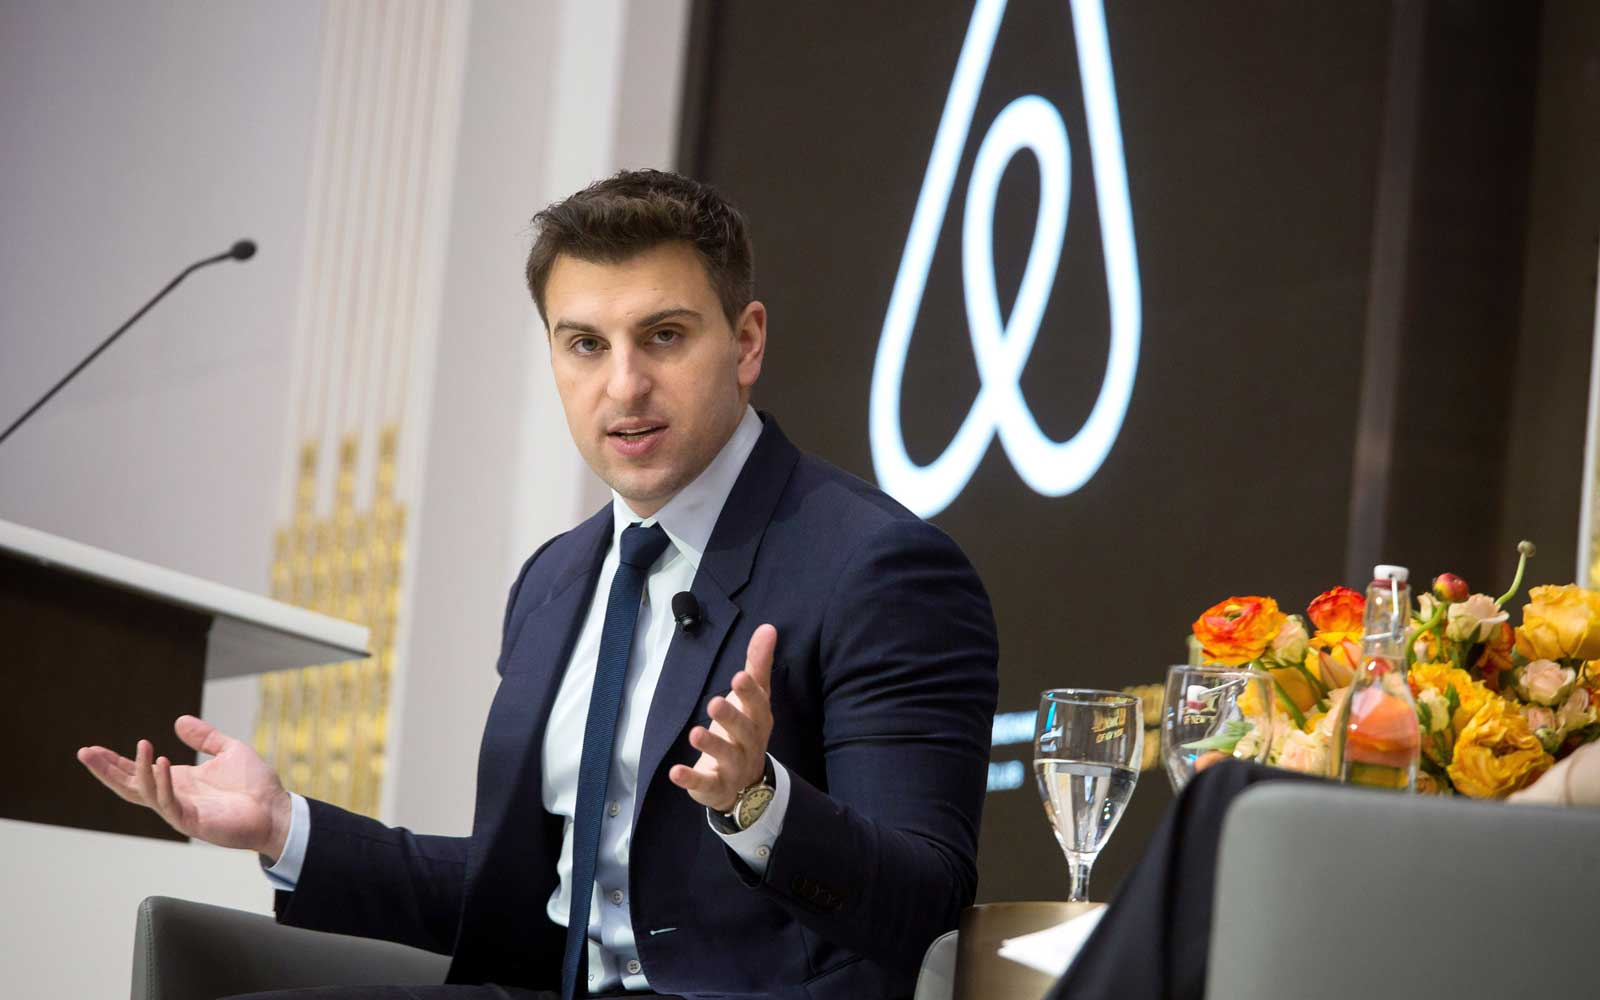 Airbnb Inc. Chief Executive Officer Brian Chesky